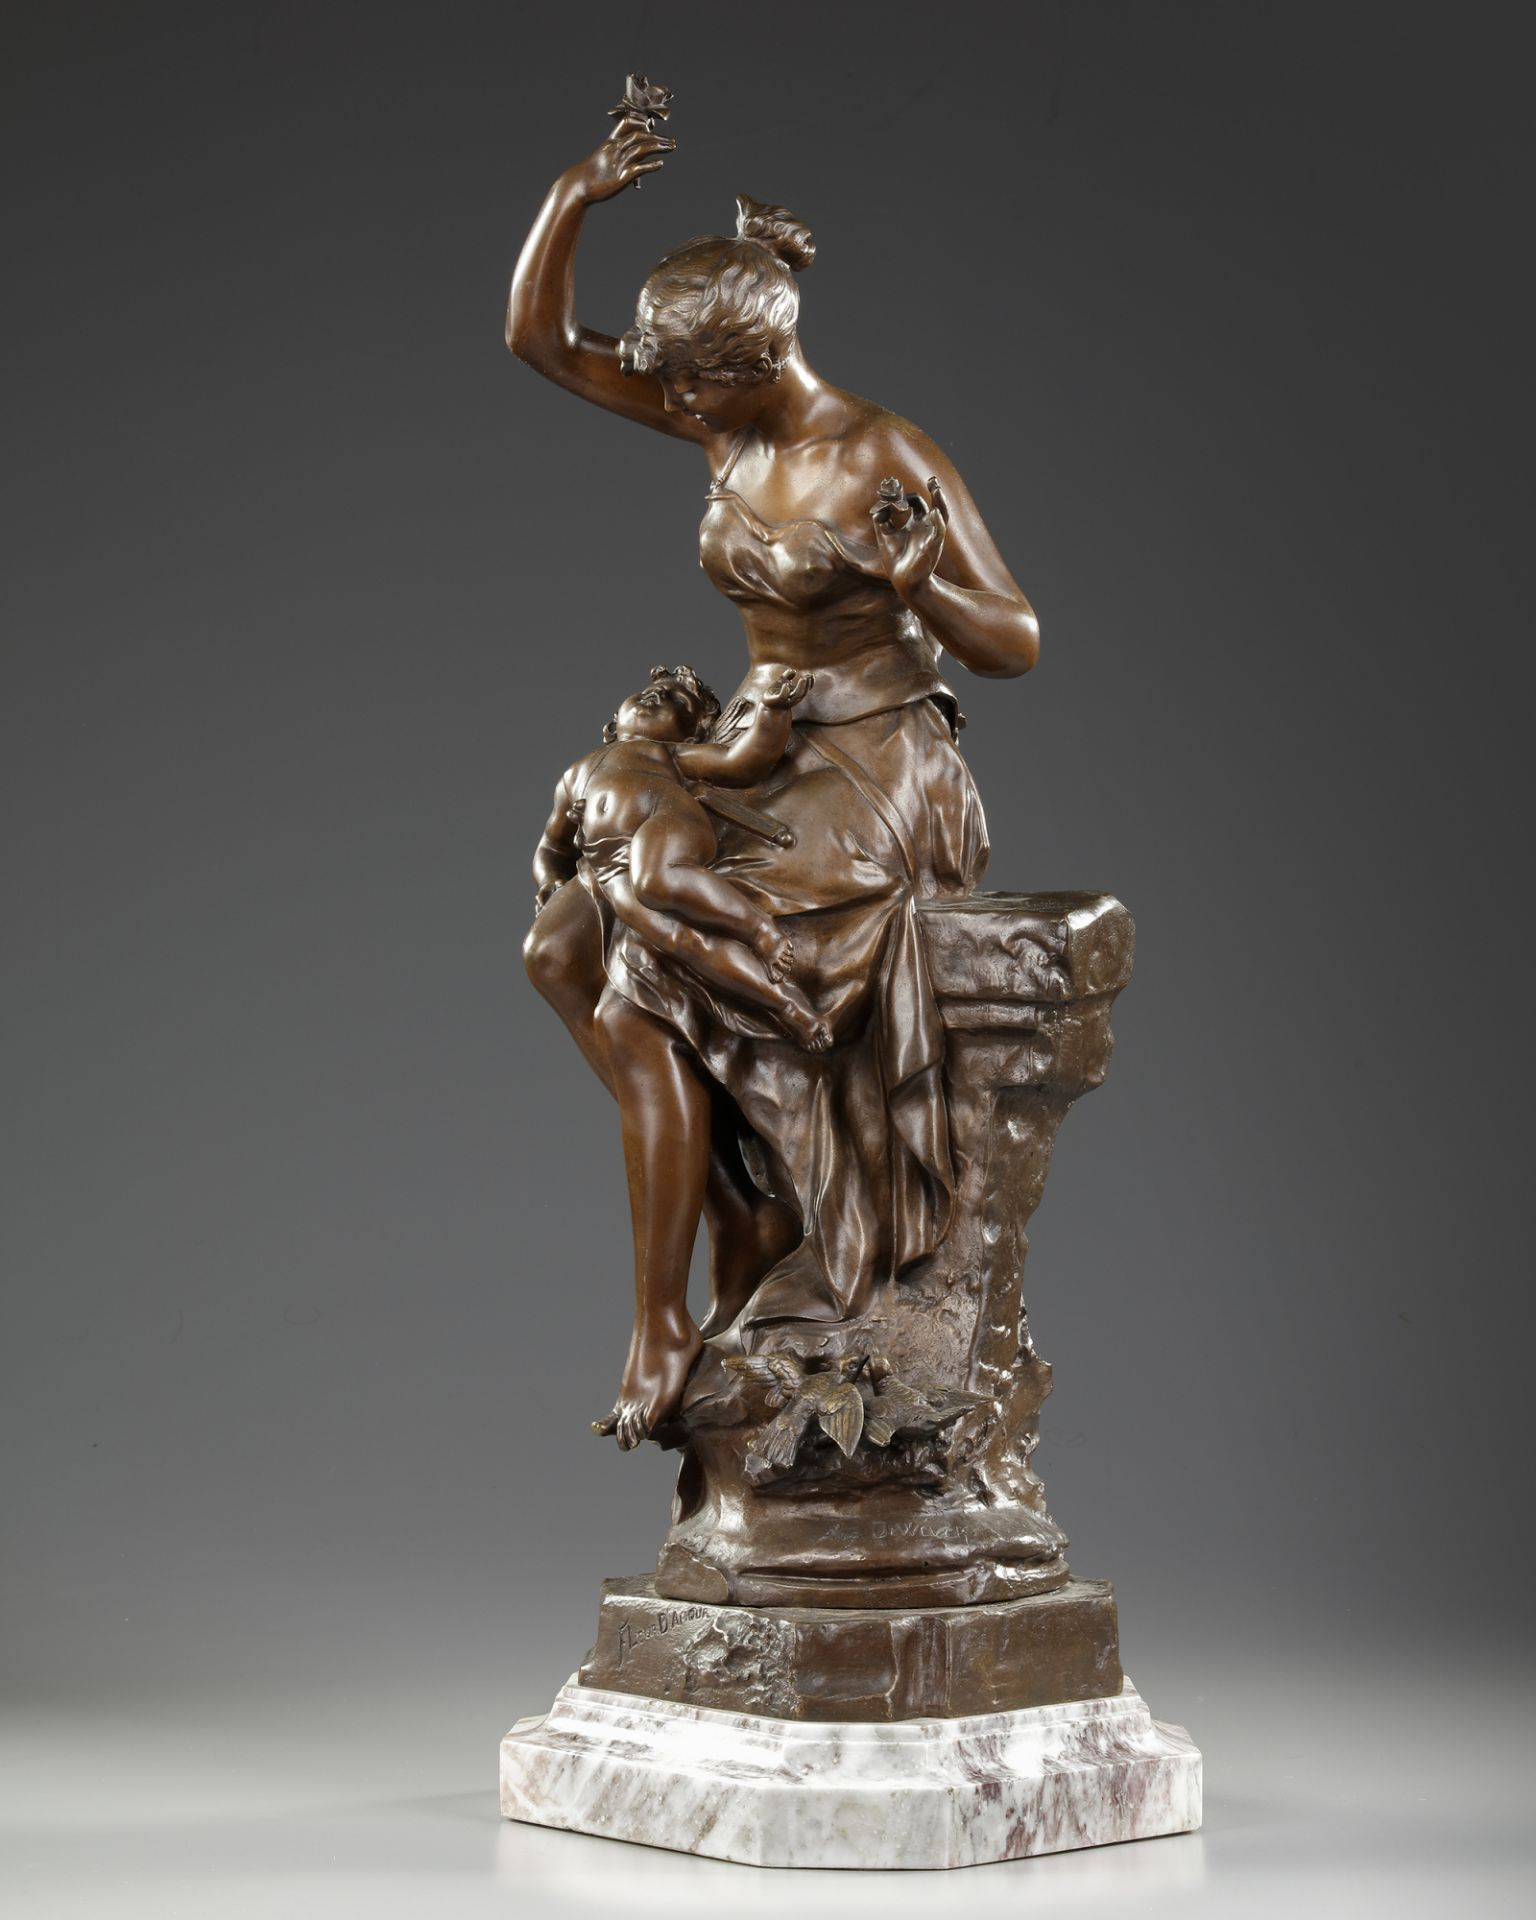 A BRONZE STATUE, AUGUSTE DEWEVER, LATE 19TH CENTURY - Image 2 of 5